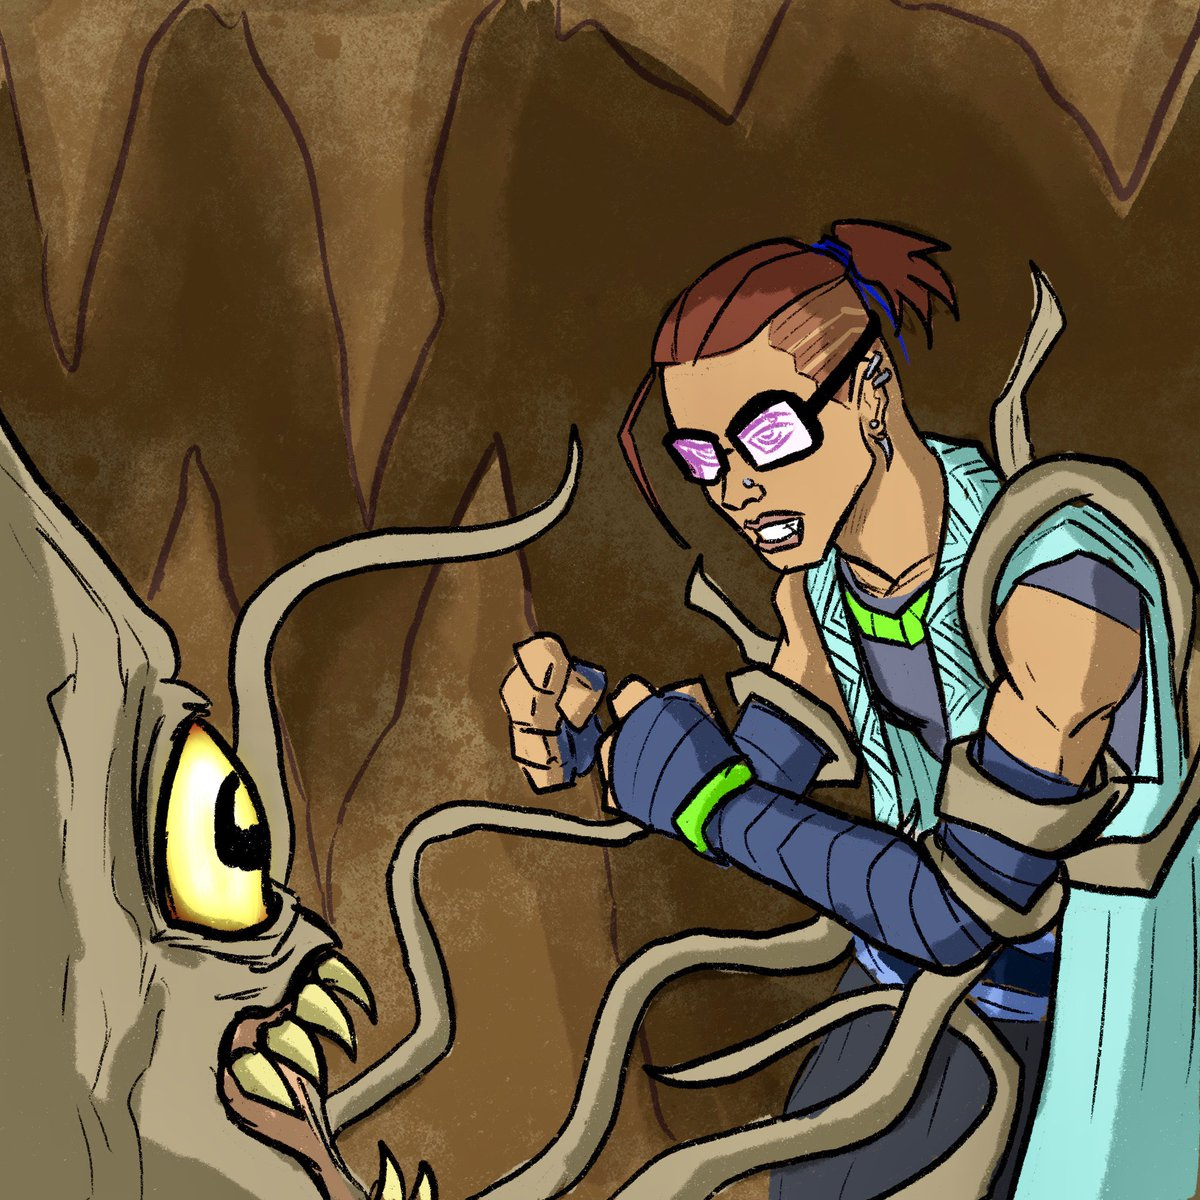 Squaring up to the rock creature, beau punches it's glowing